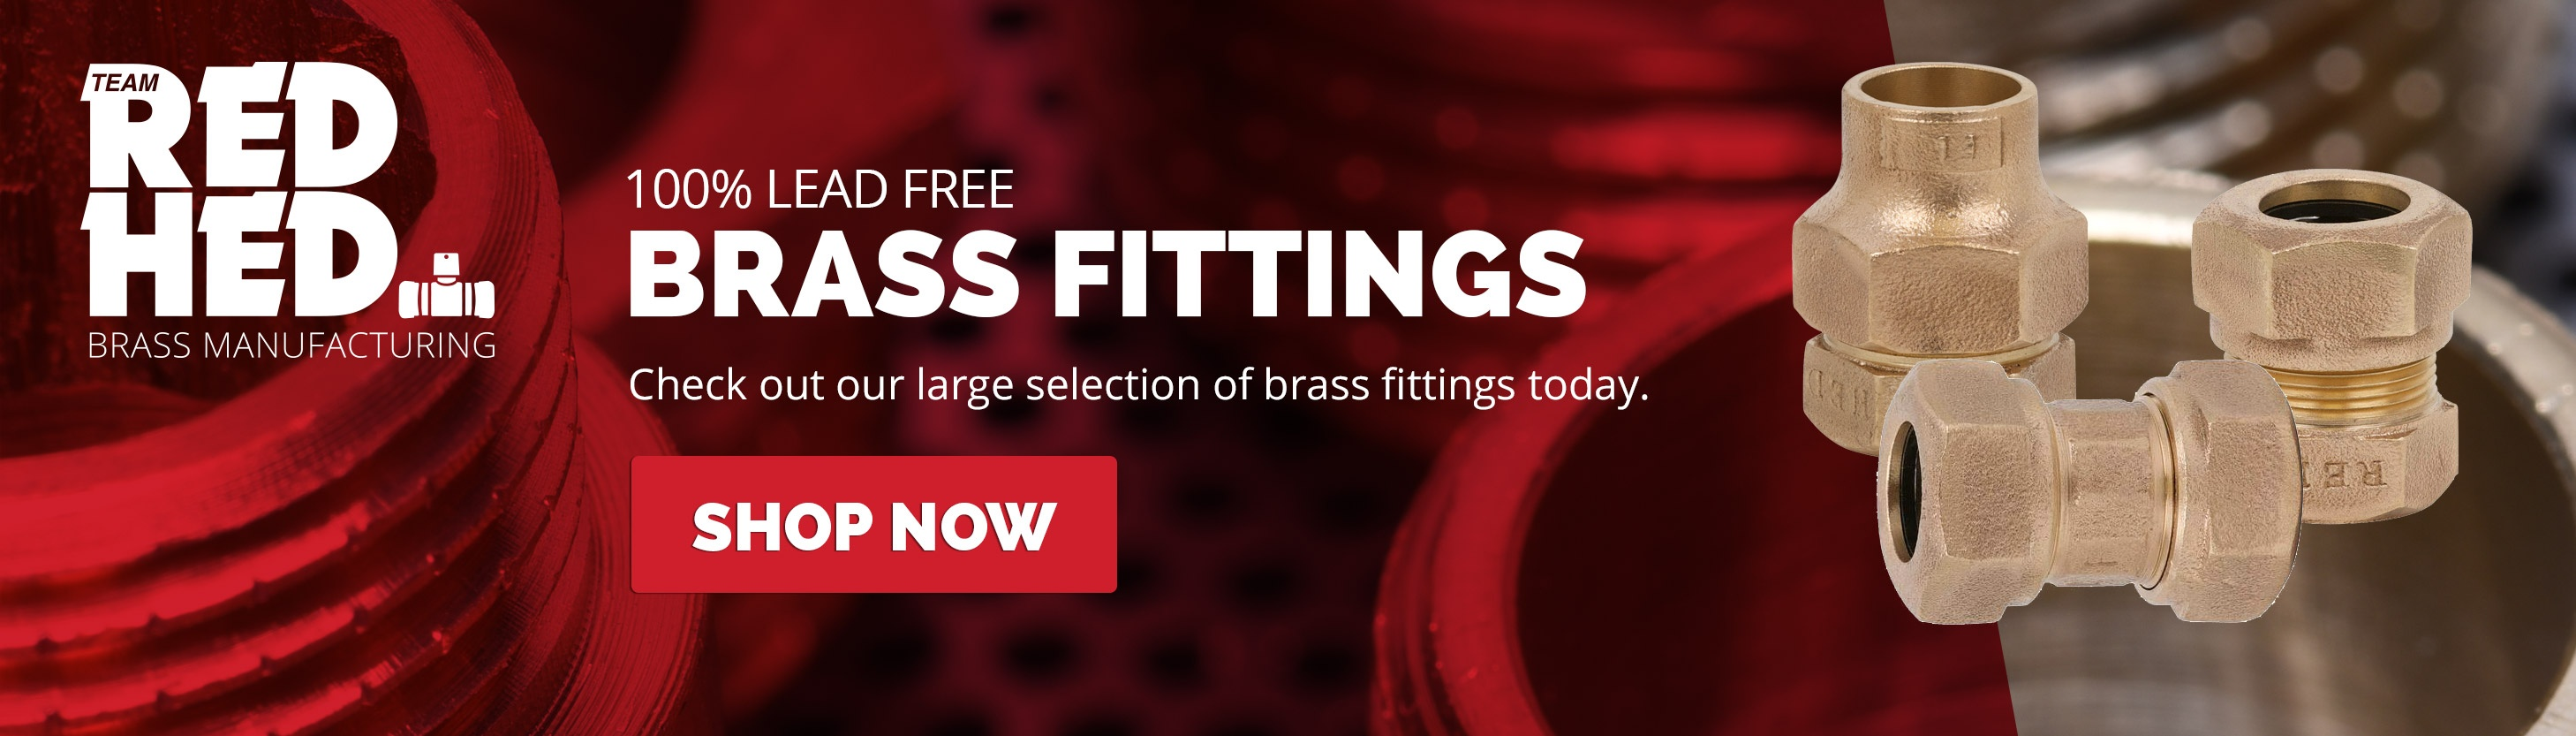 Brass Fittings CTA